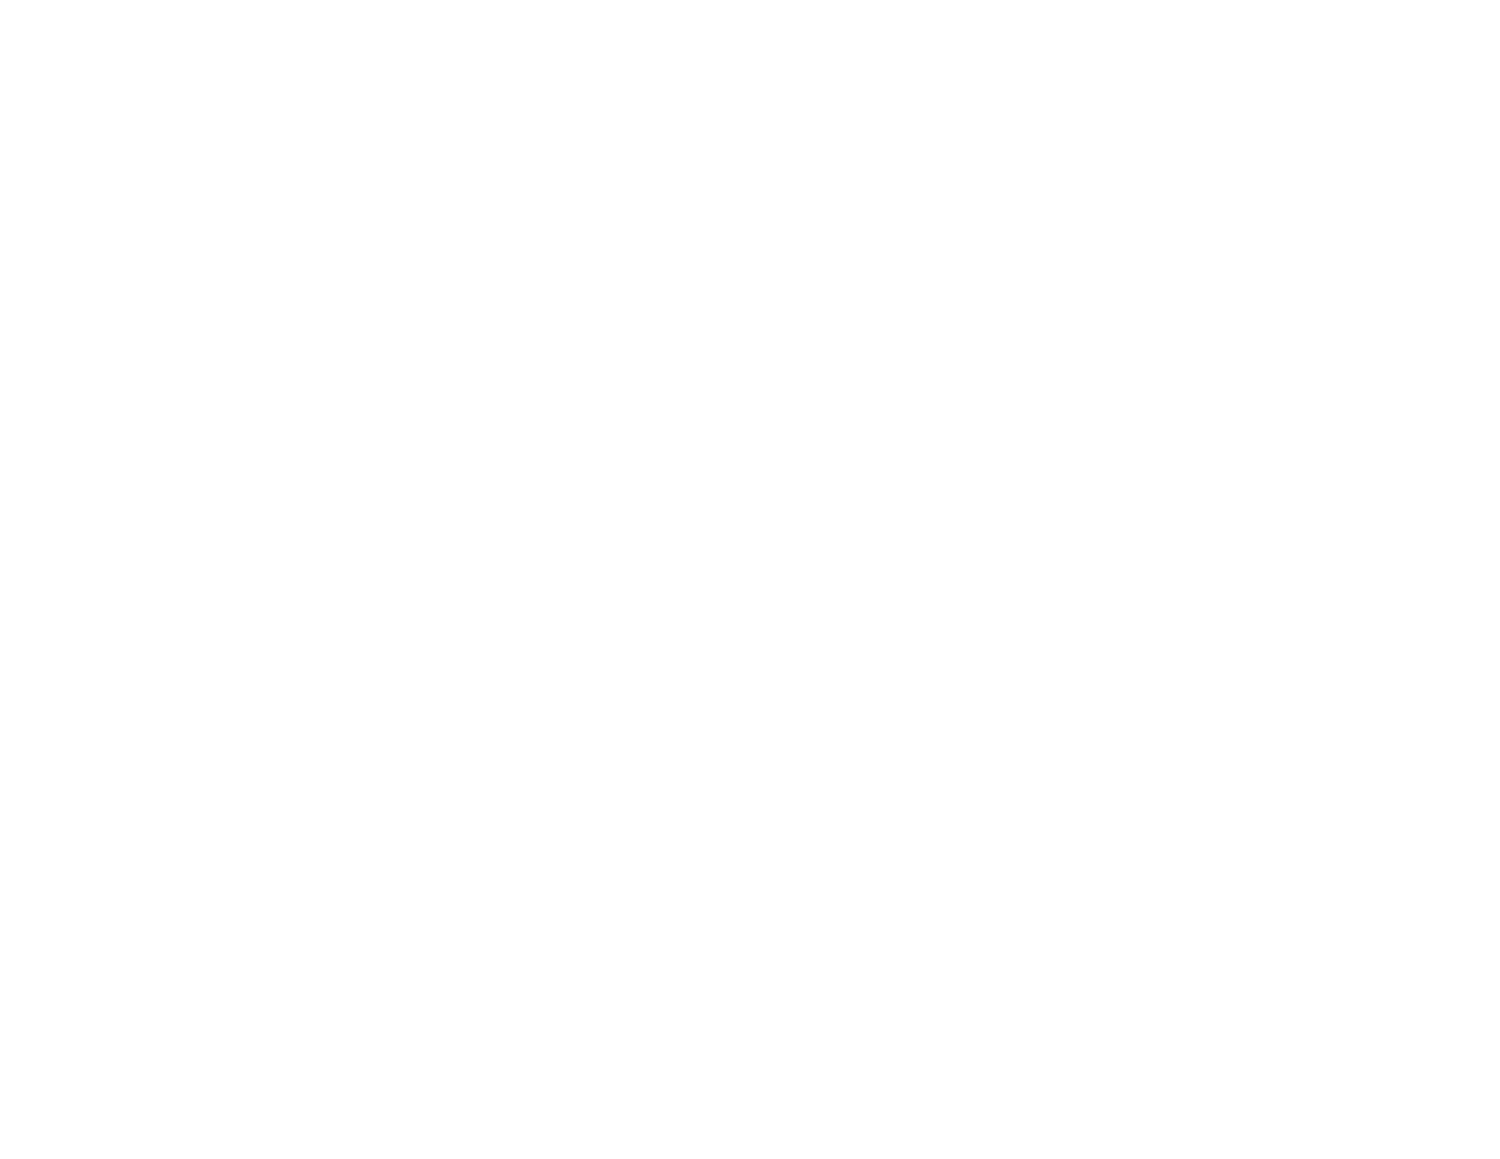 Victory Props